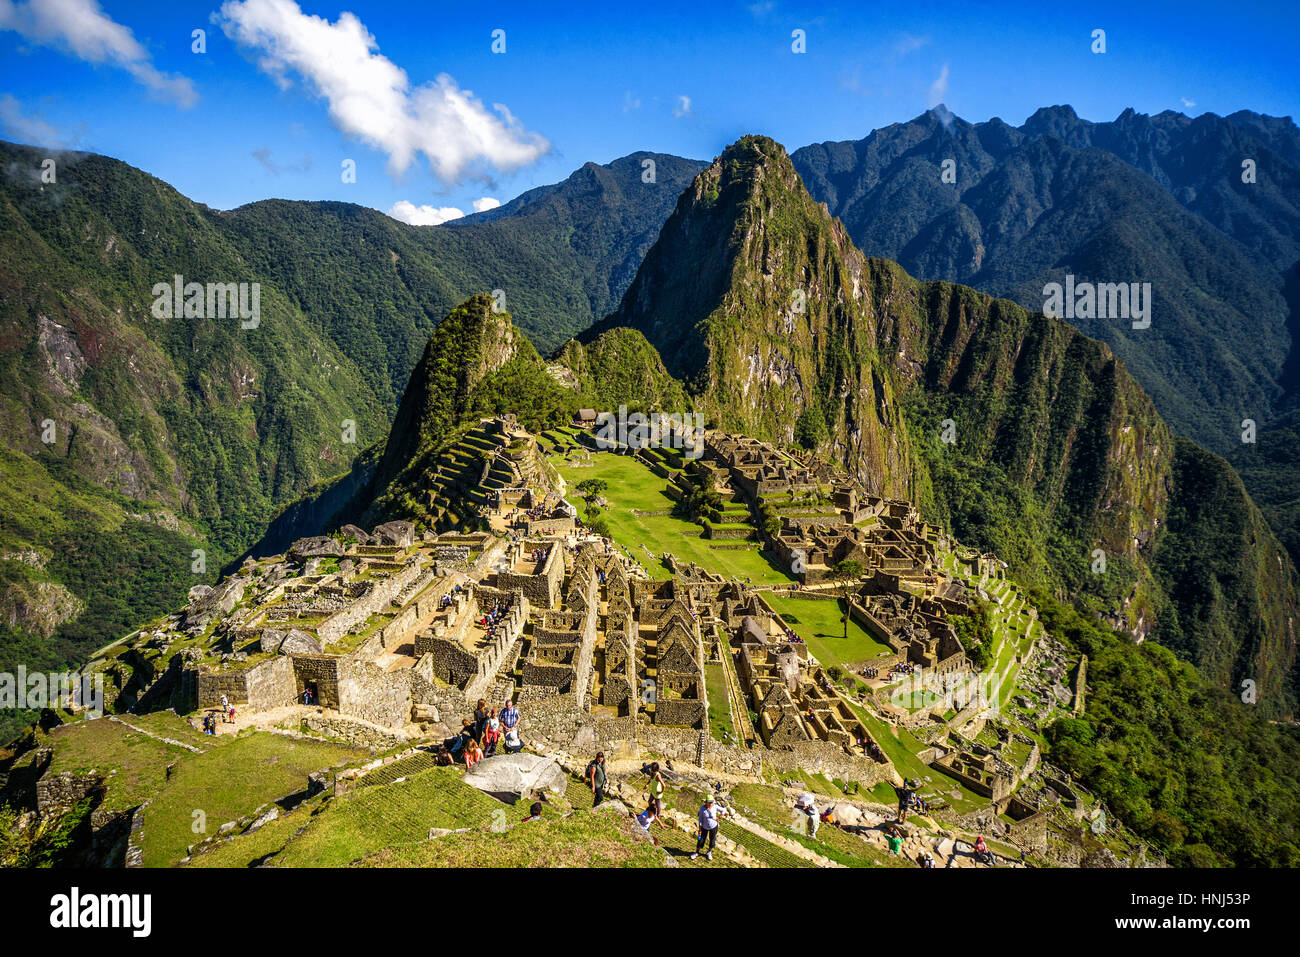 View of the Lost Incan City of Machu Picchu near Cusco, Peru. Machu Picchu is a Peruvian Historical Sanctuary. People - Stock Image